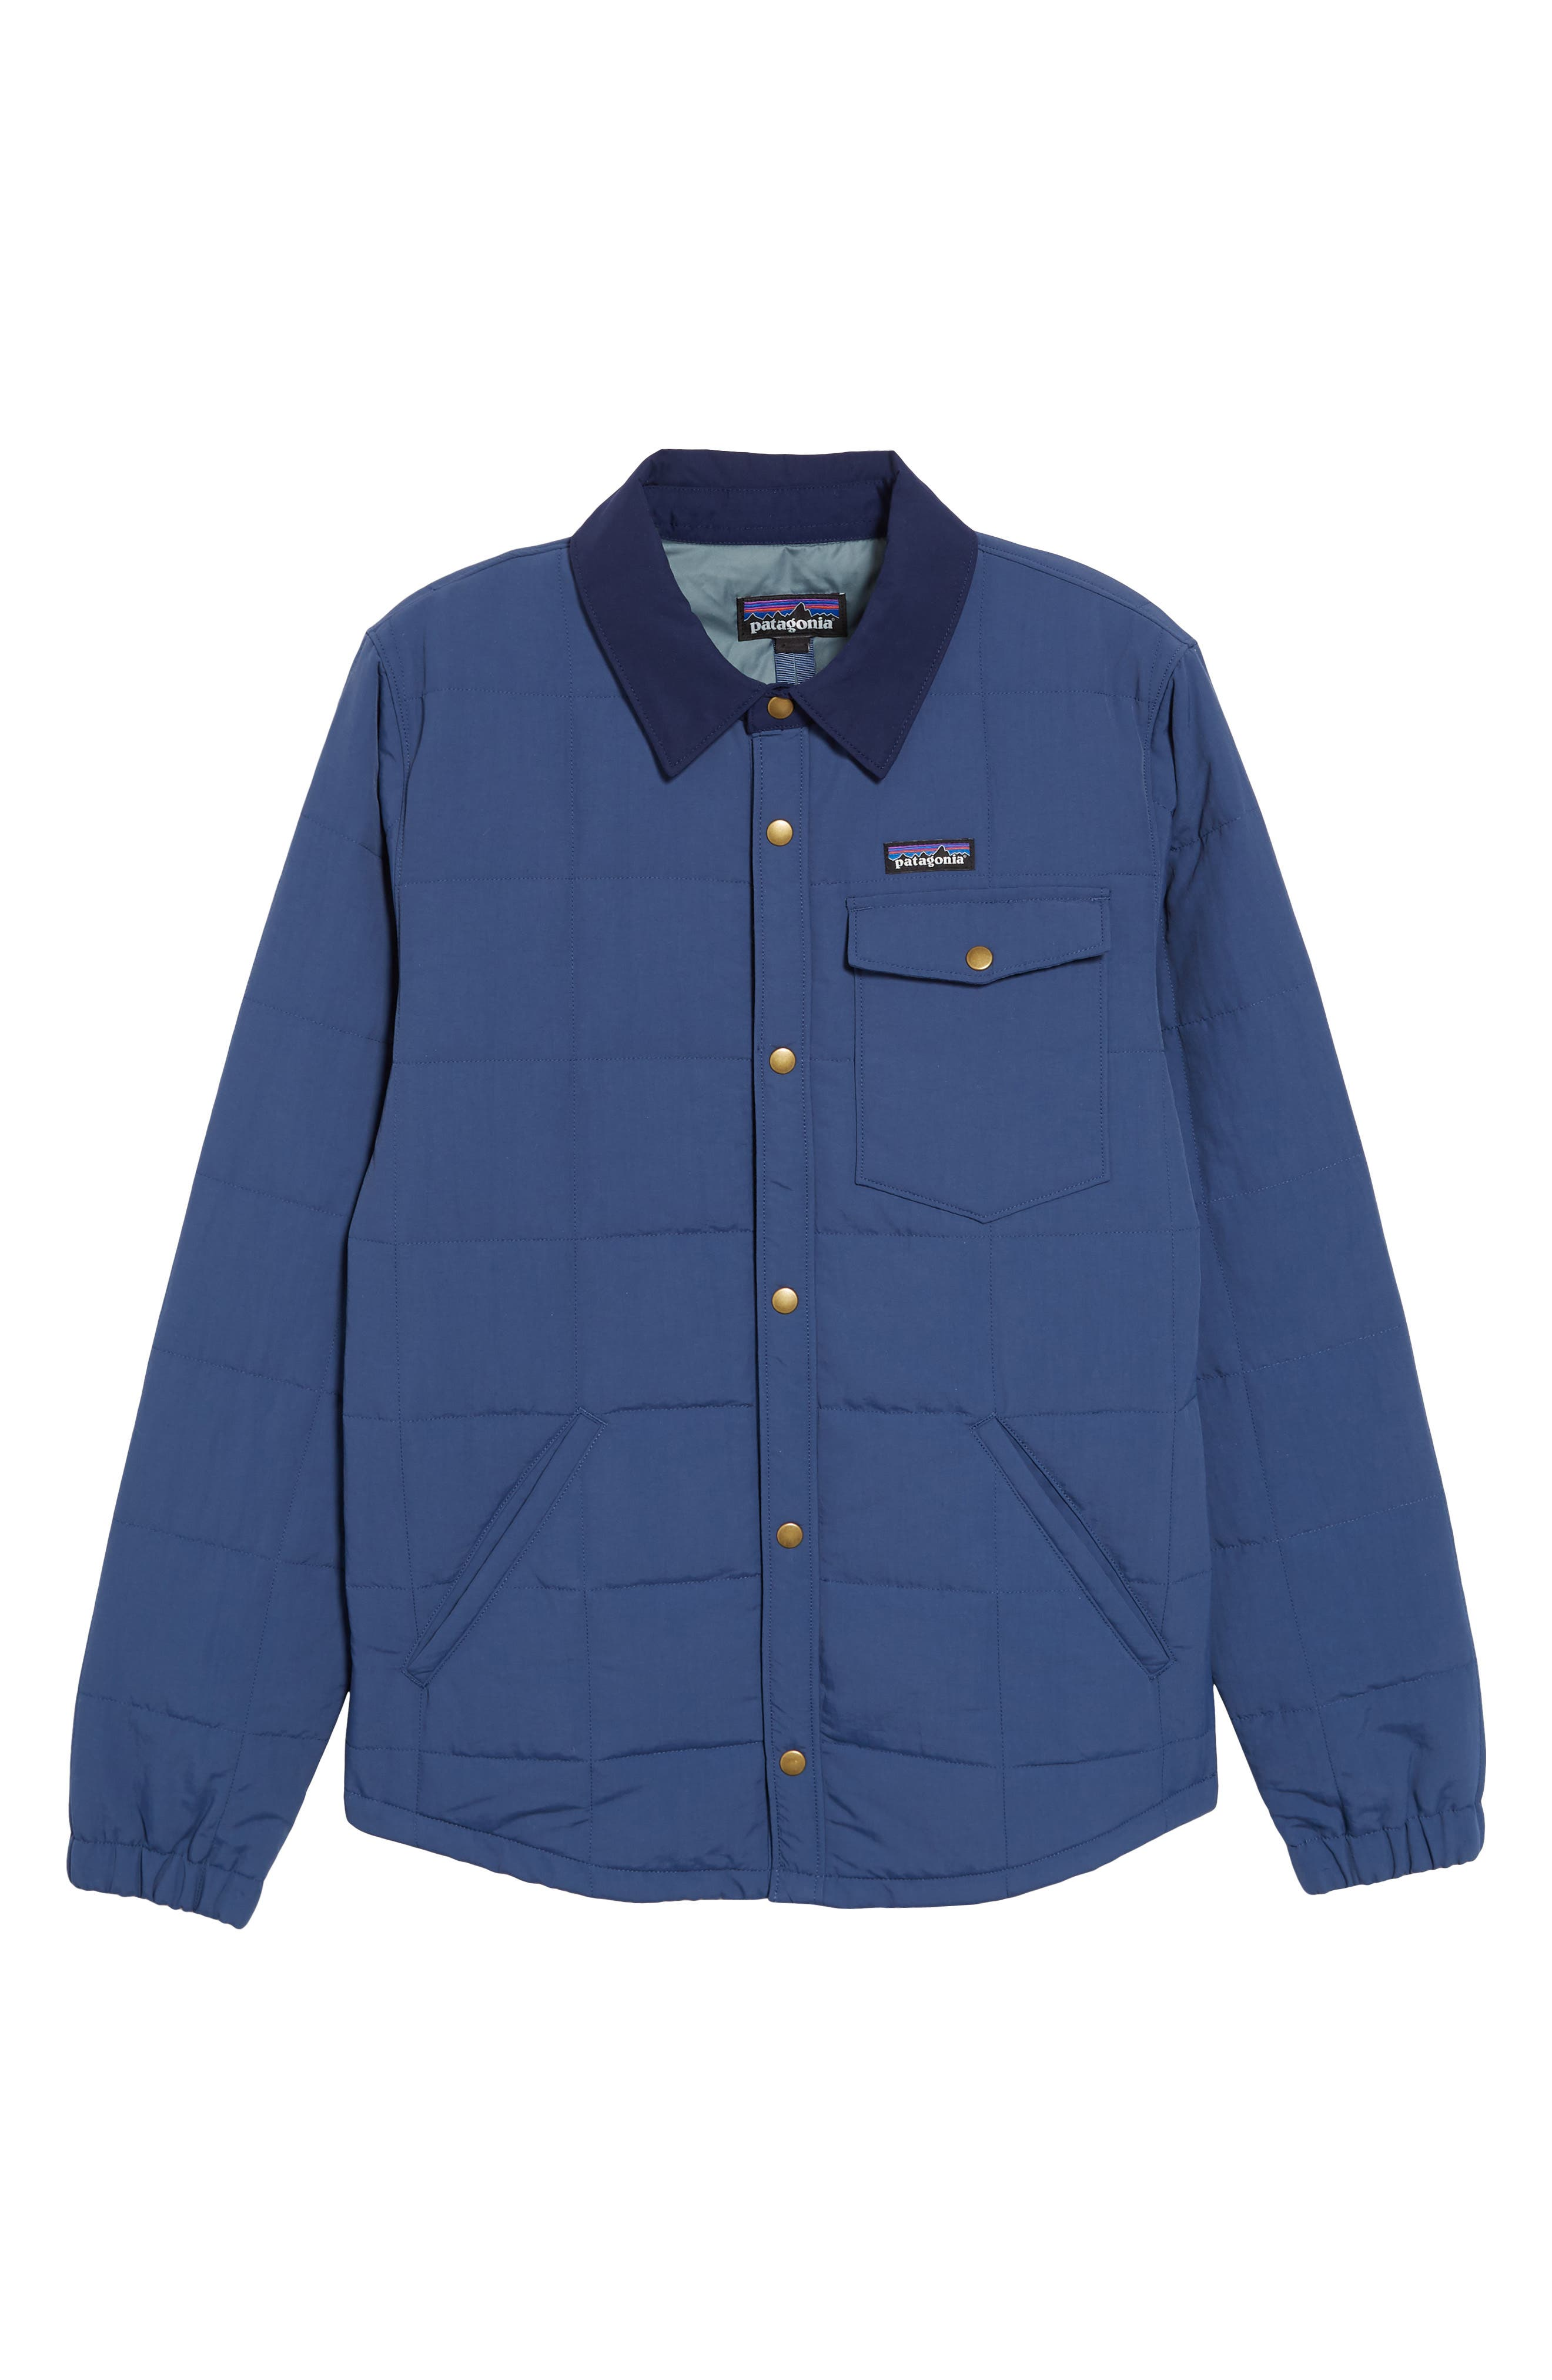 Wind & Water Resistant Quilted Shirt Jacket,                         Main,                         color, STONE BLUE